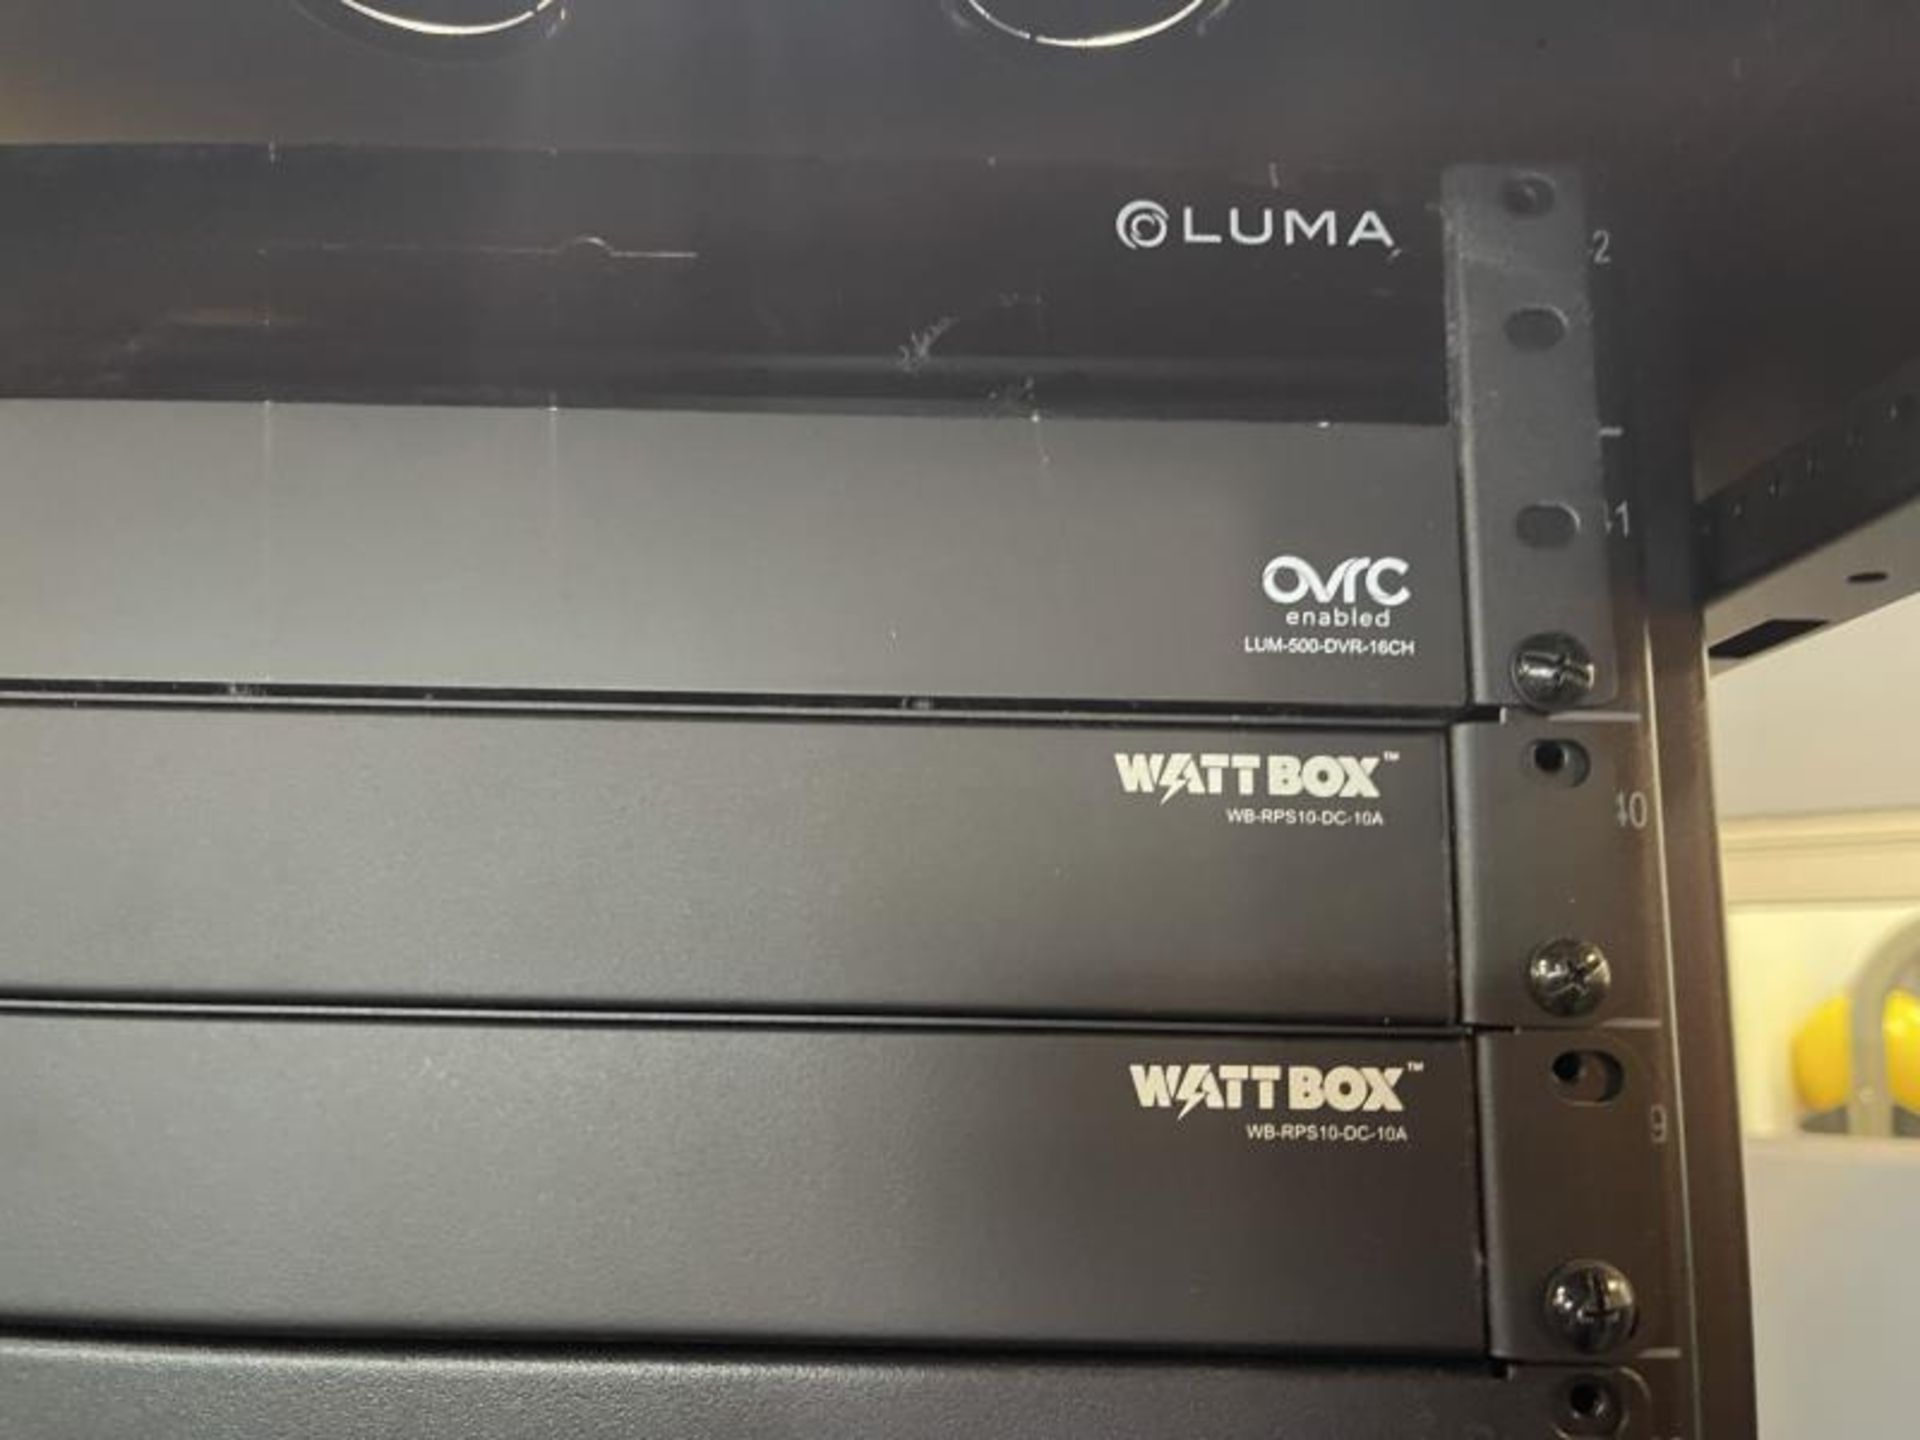 Electornics Cabinet by Strong , Made 2018 w/ Luma Network Box, OVRC Enabled LUM-500-DVR-16CH, (2) Wa - Image 3 of 18